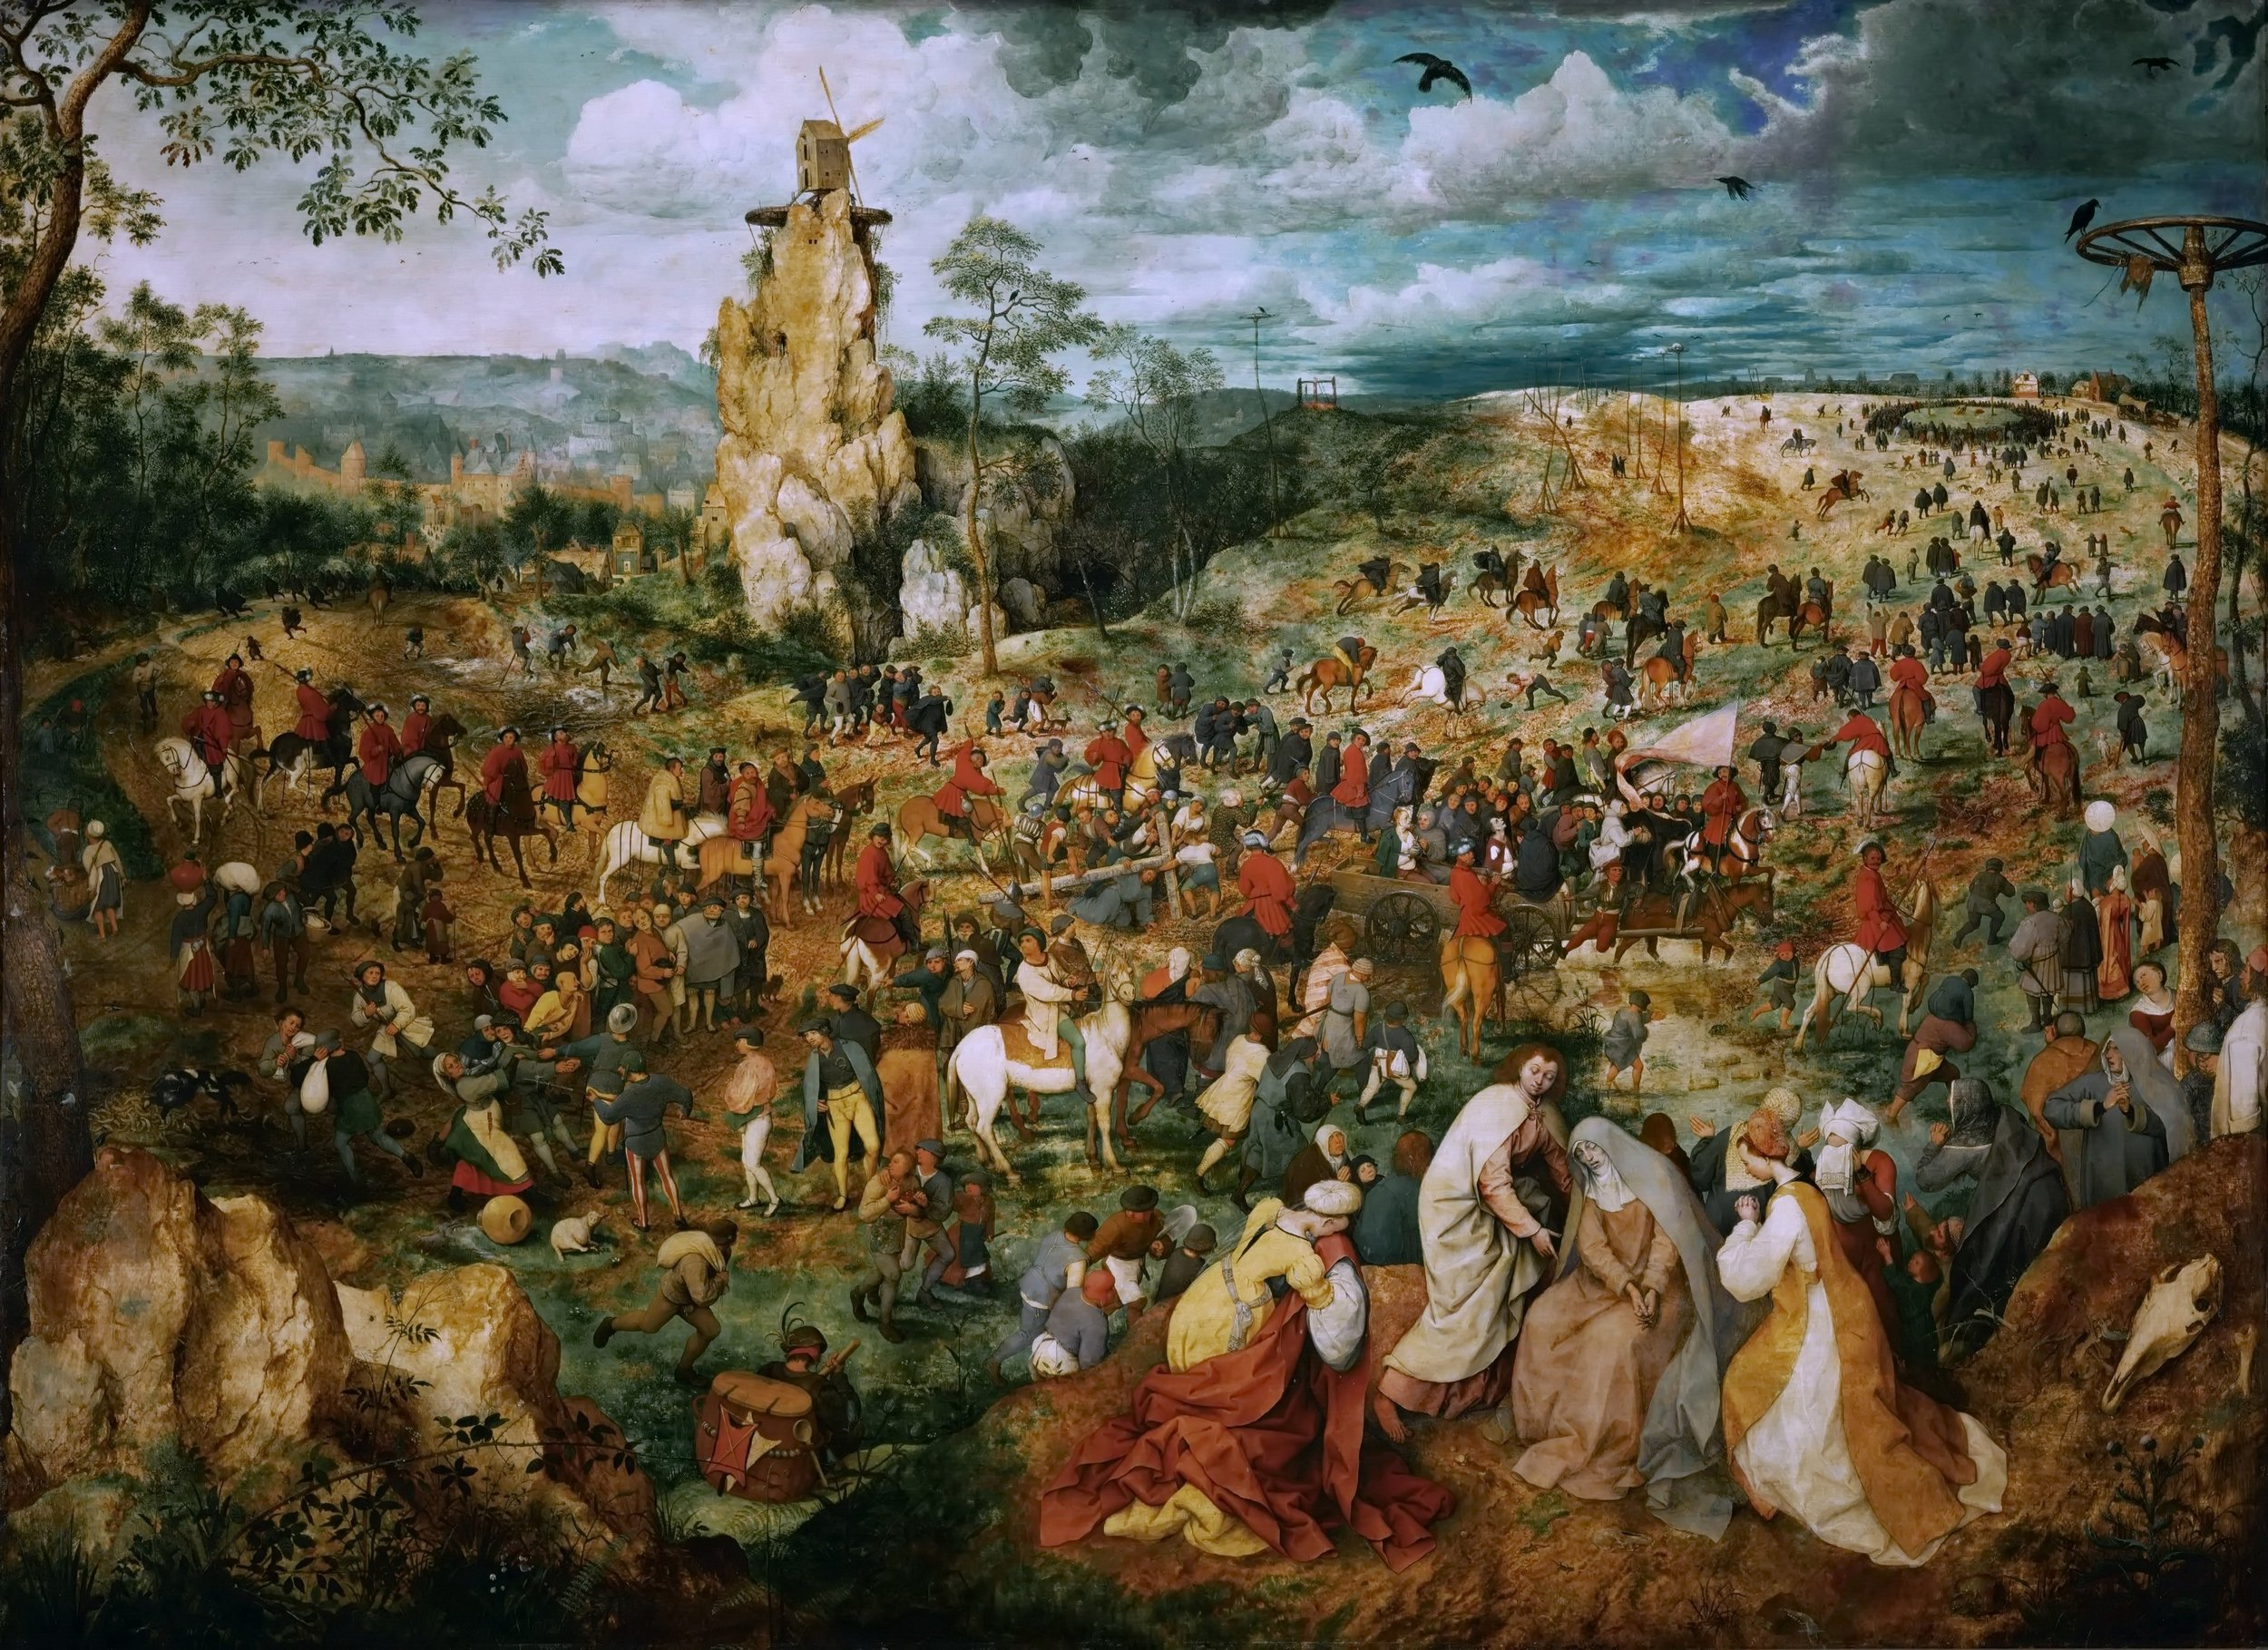 Pieter_Bruegel_(I)_-_The_Procession_to_Calvary_(1564).jpg